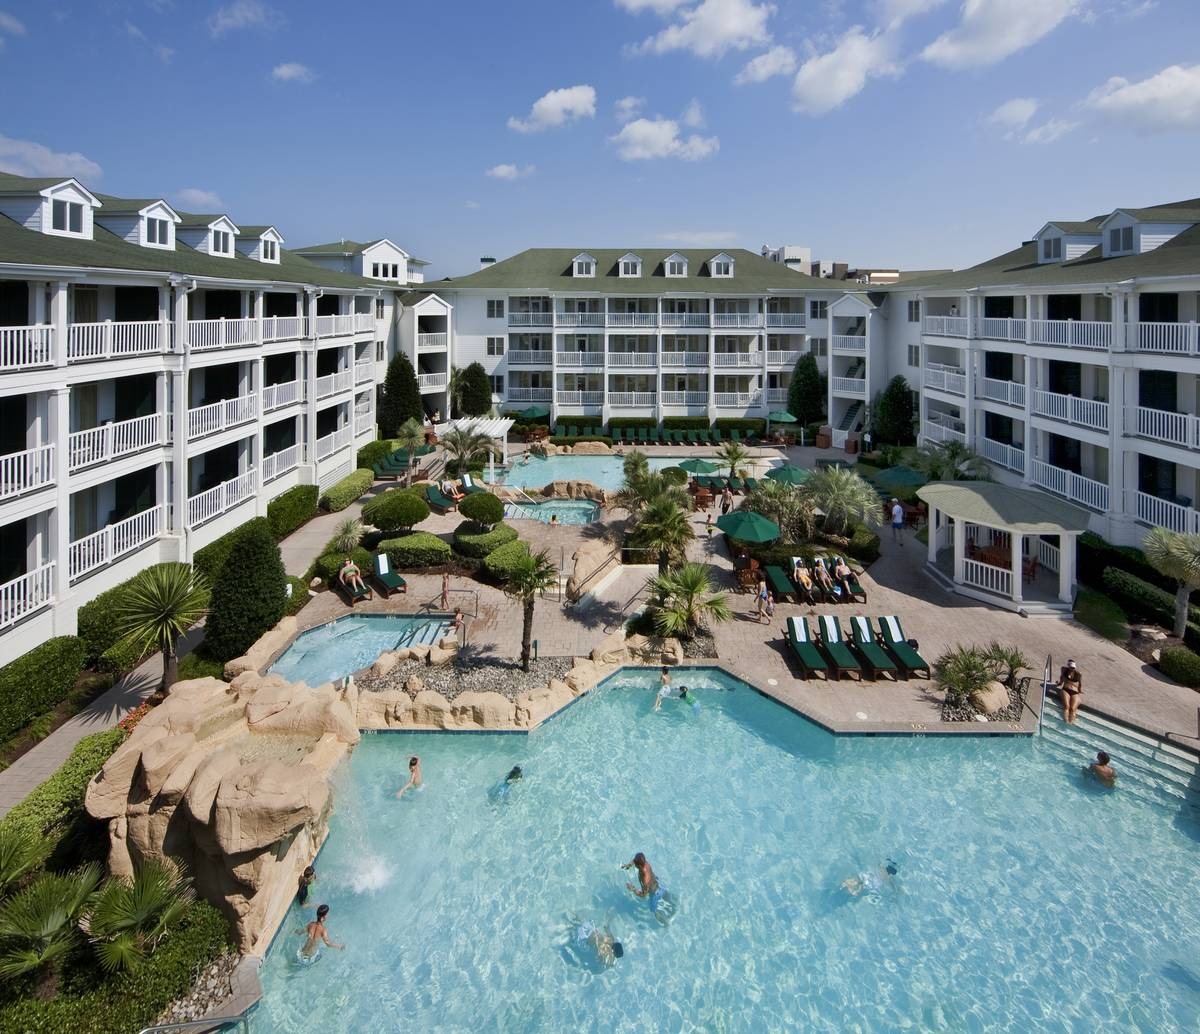 Reges Oceanfront Resort Home: Guests Save Up To 40% With Virginia Beach Vacation Rentals